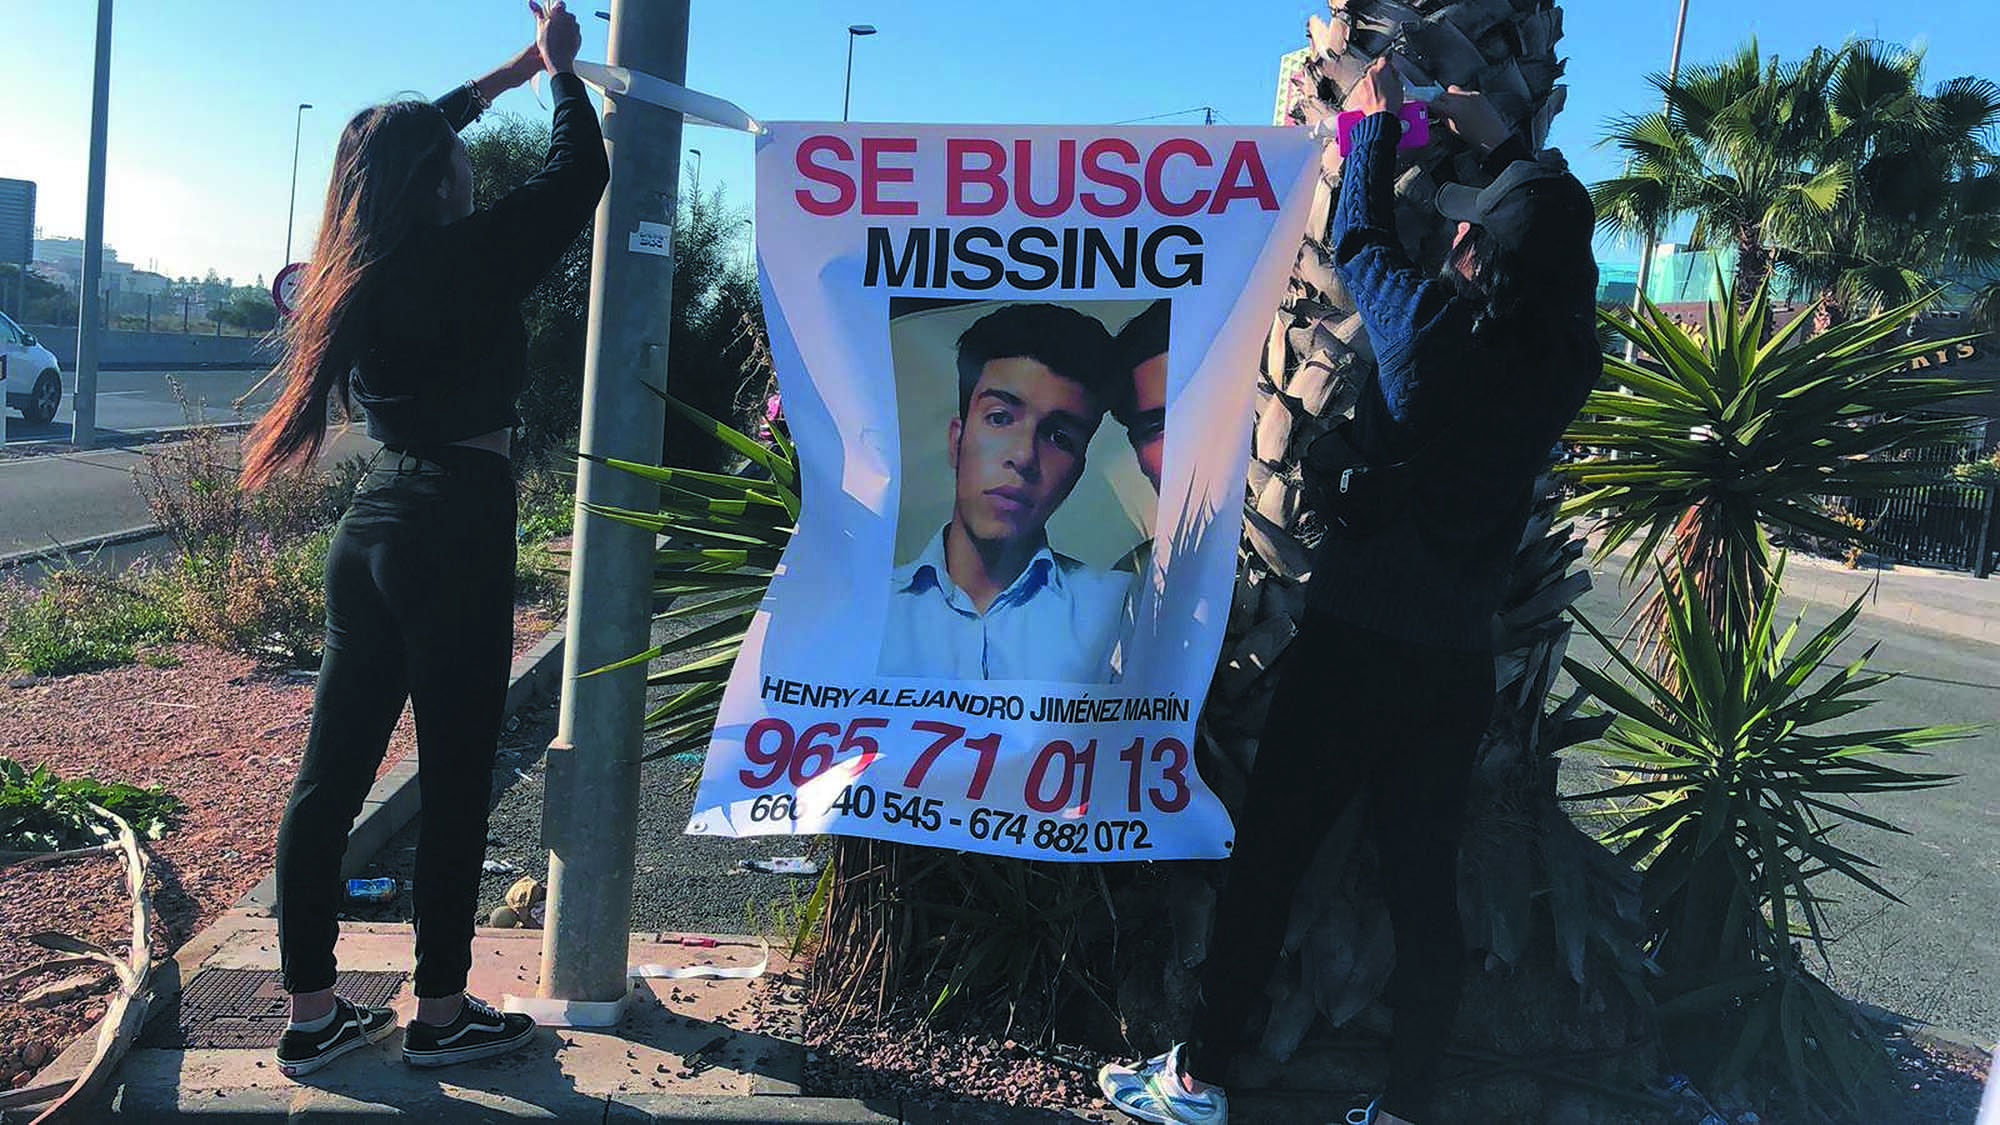 Anyone with any information about his whereabouts is asked to call in confidence 062 or 112.